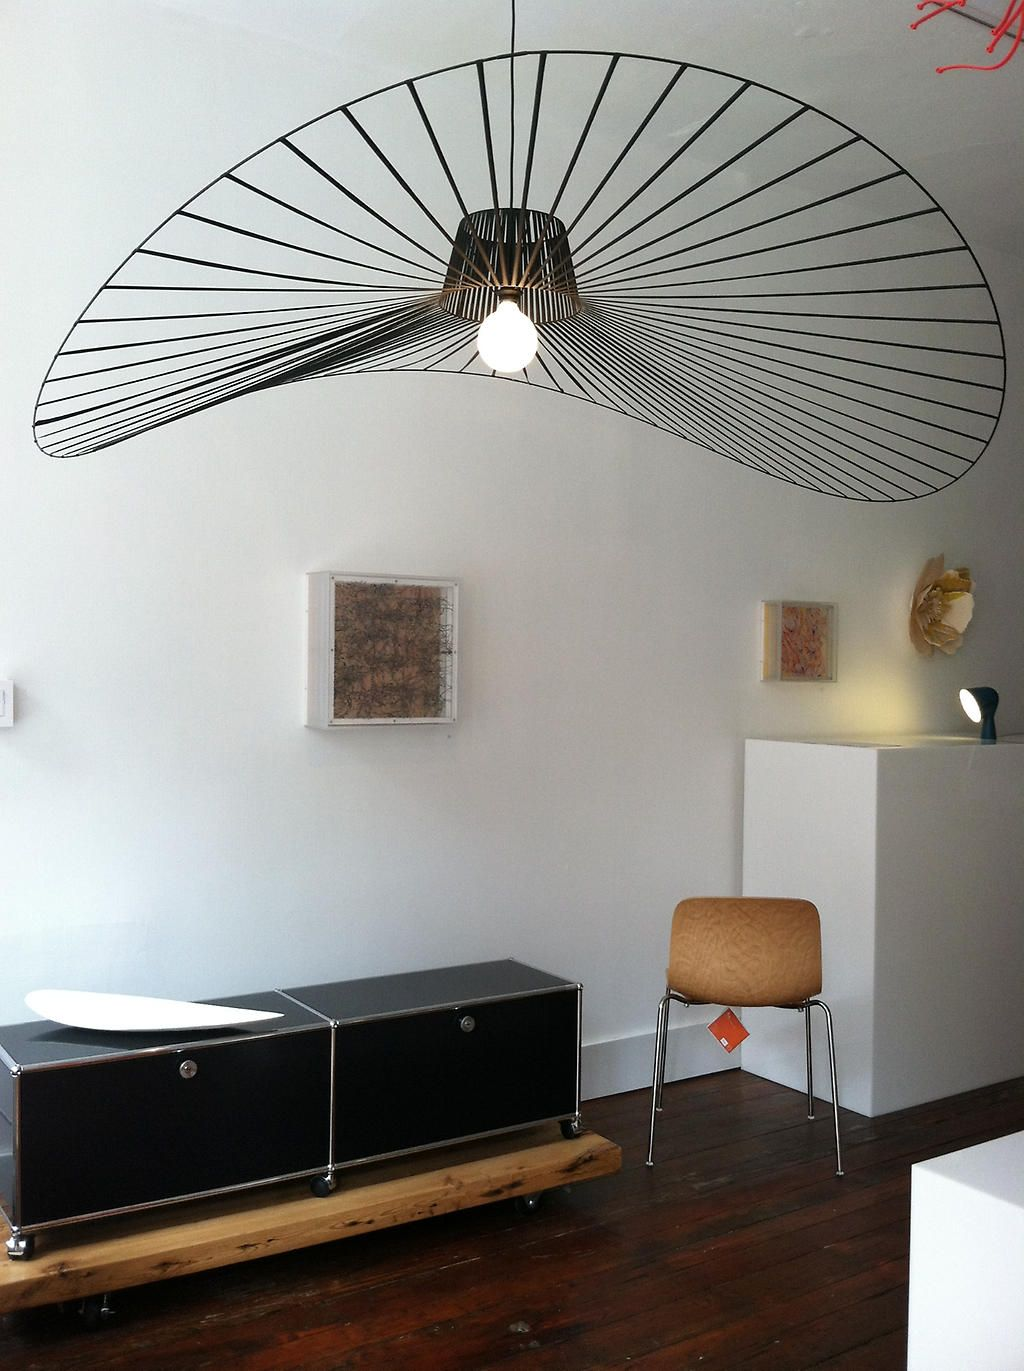 Vertigo constance guisset for petit friture ana pinterest vertigo lamps and pendant lamps - Suspension style vertigo ...